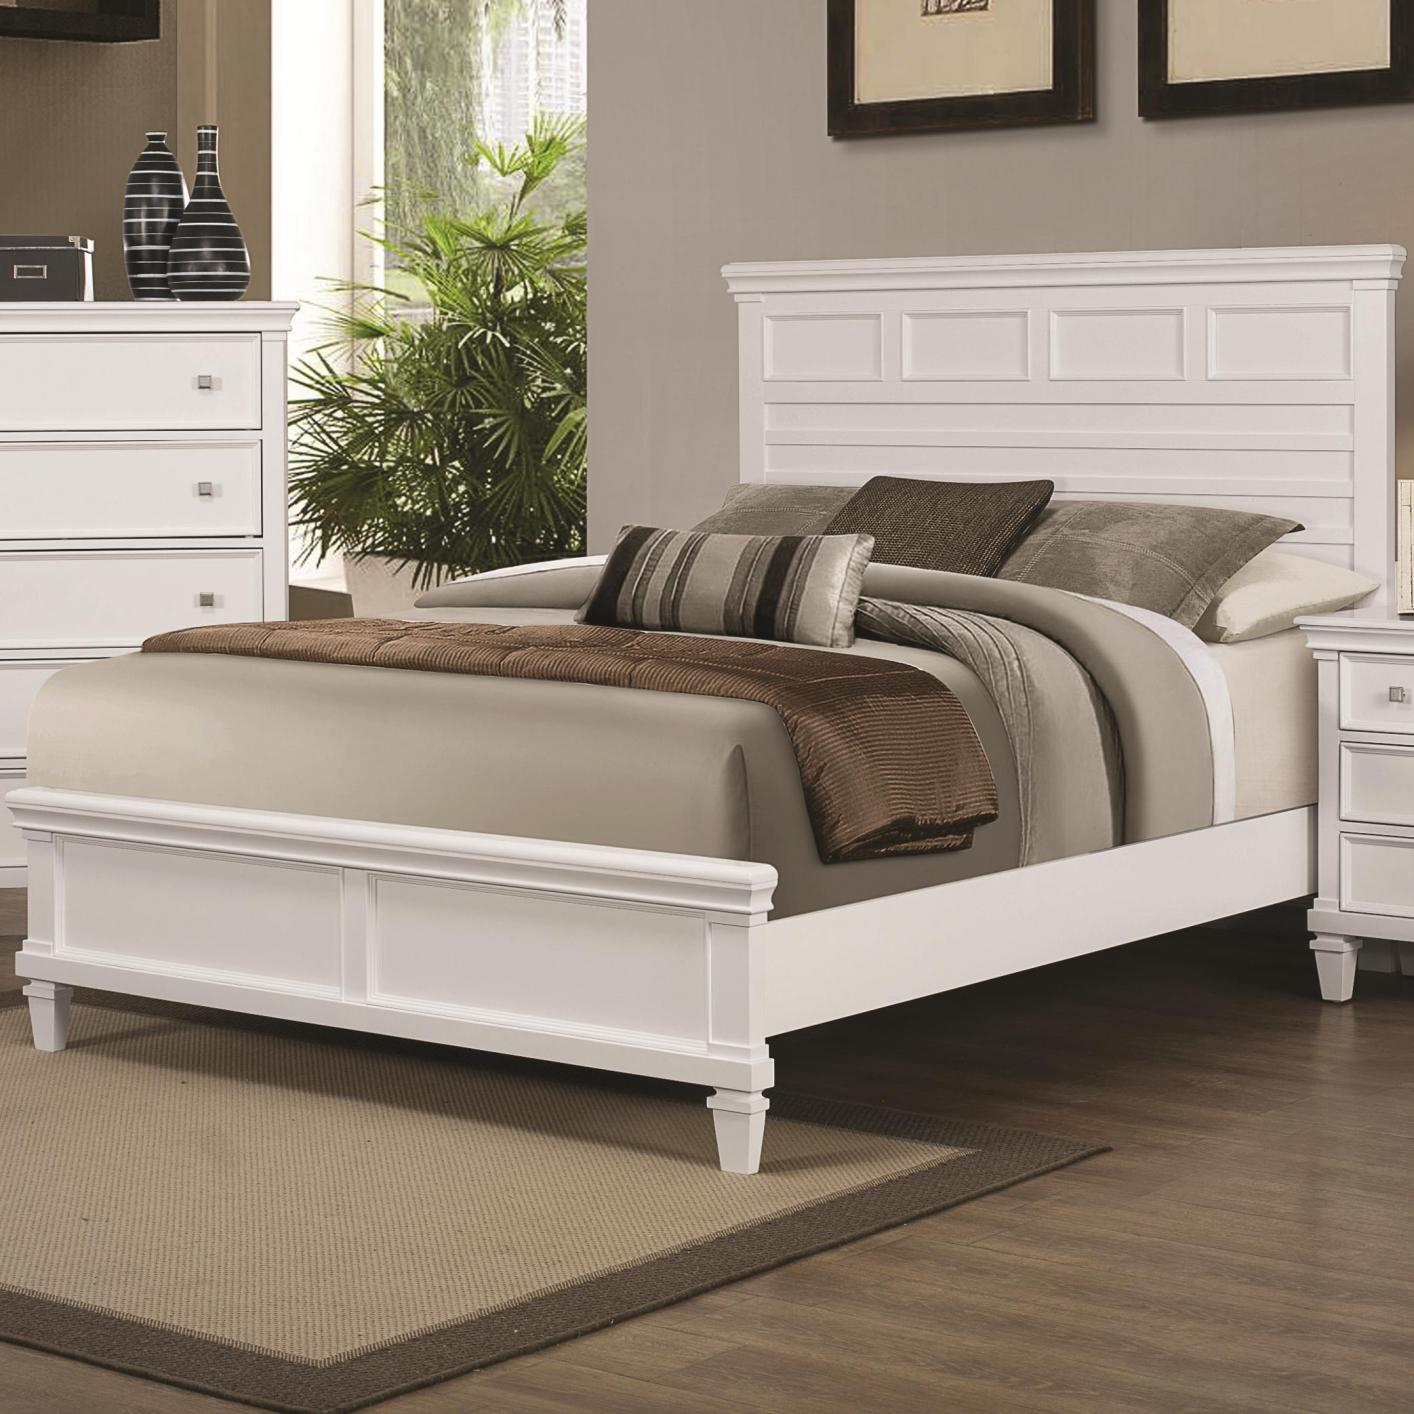 White Wood Queen Size Bed - Steal-A-Sofa Furniture Outlet ...